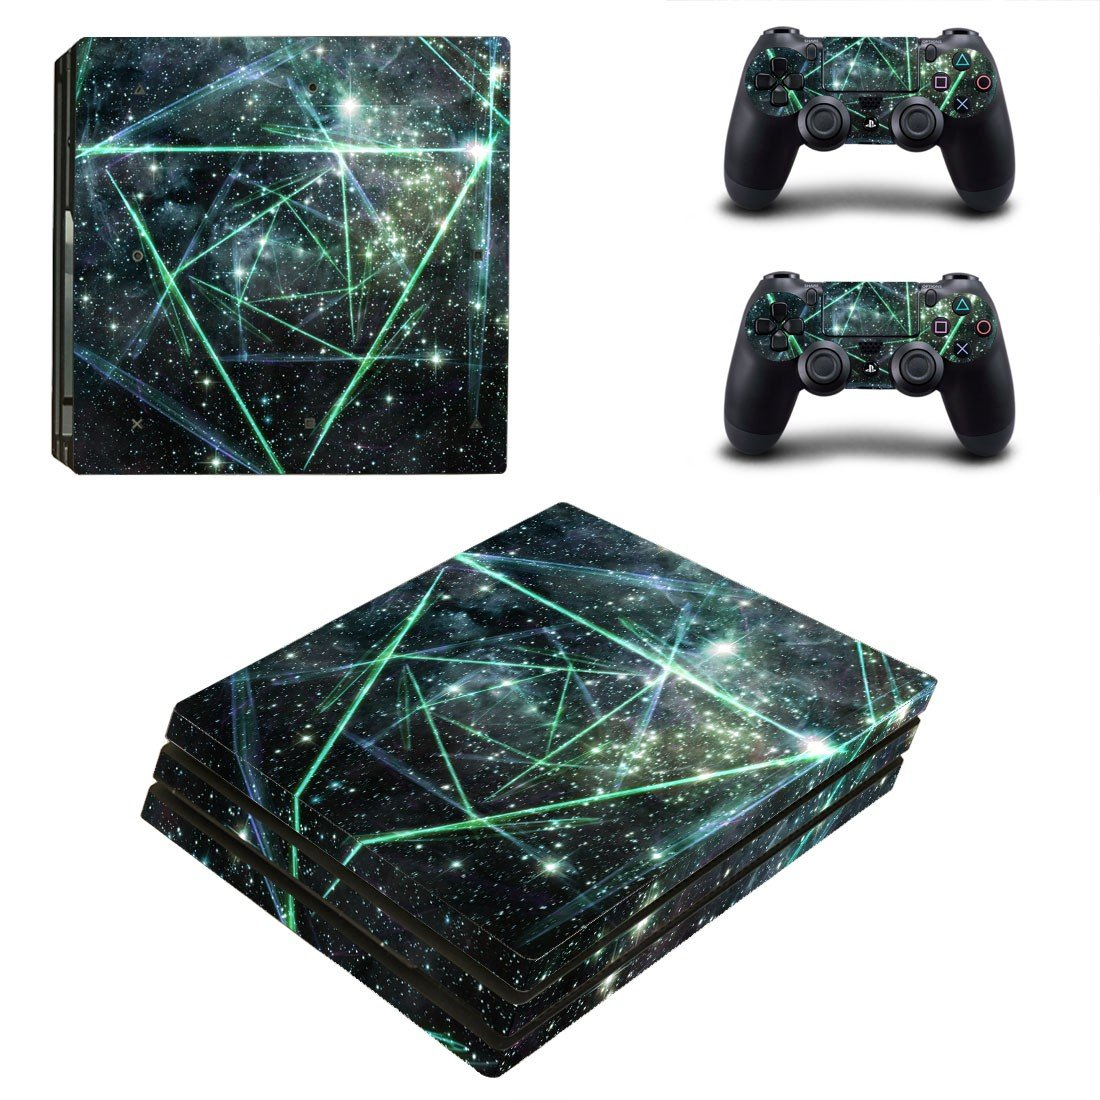 Galaxy stars decal skin sticker for PS4 Pro console and controllers